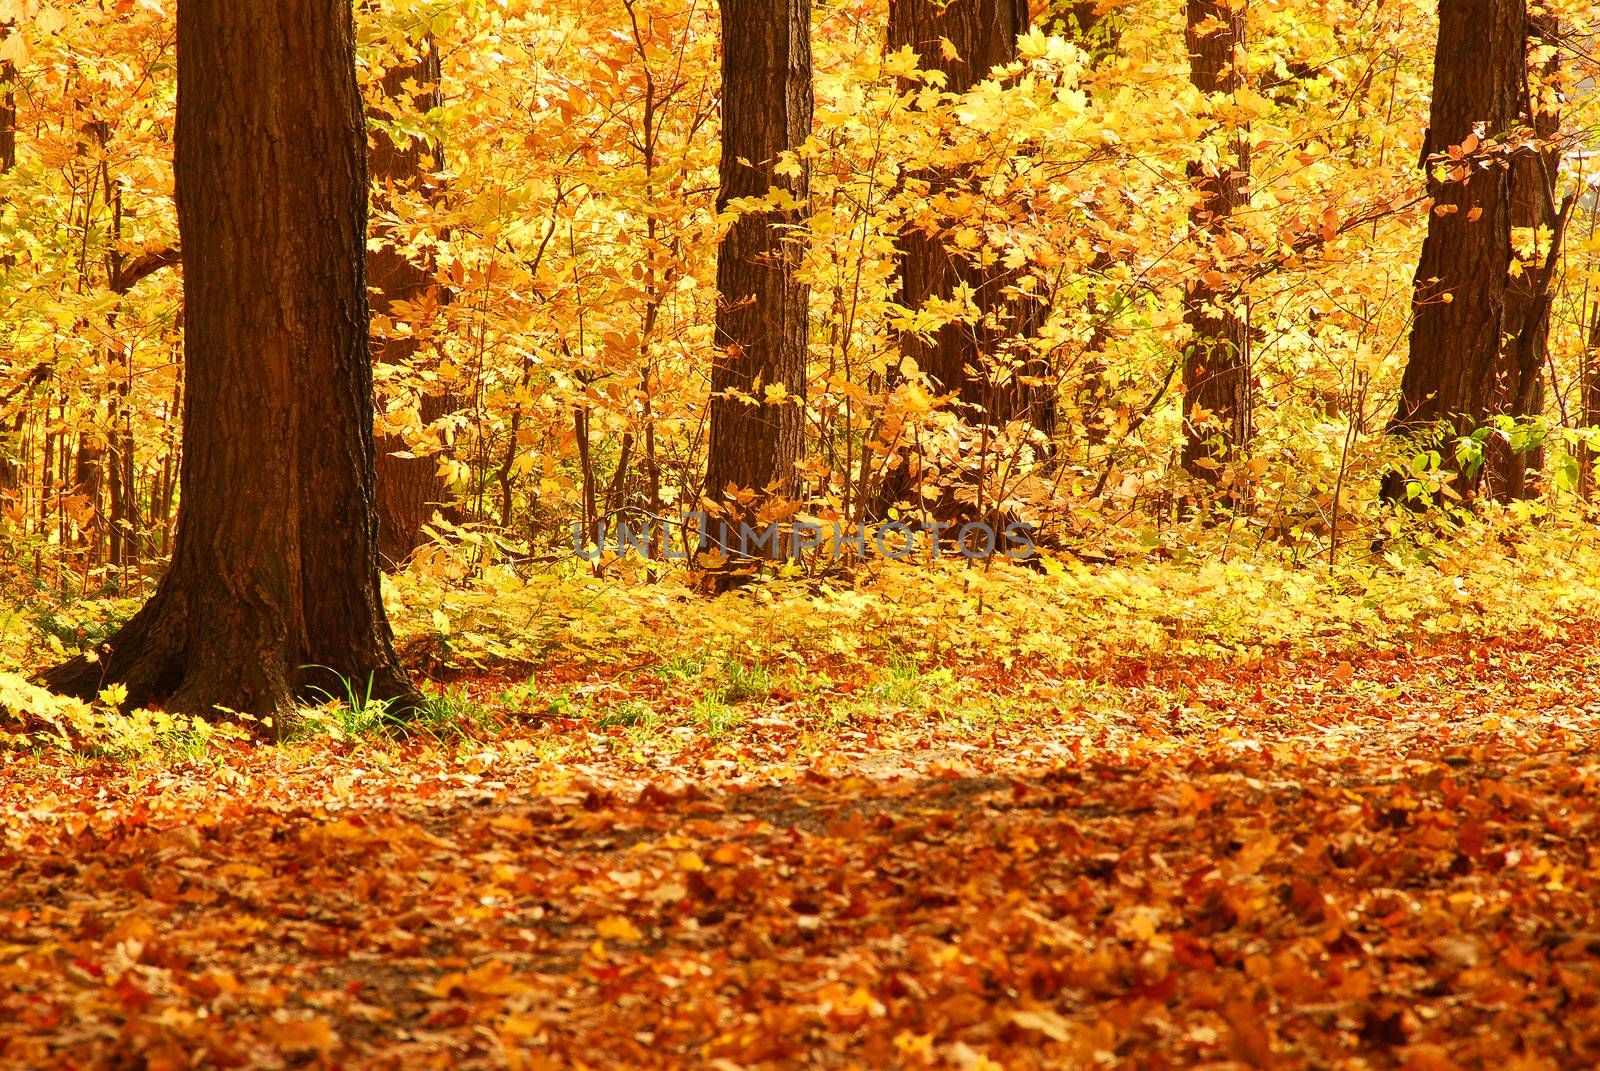 Scenic view of colorful forest in the fall